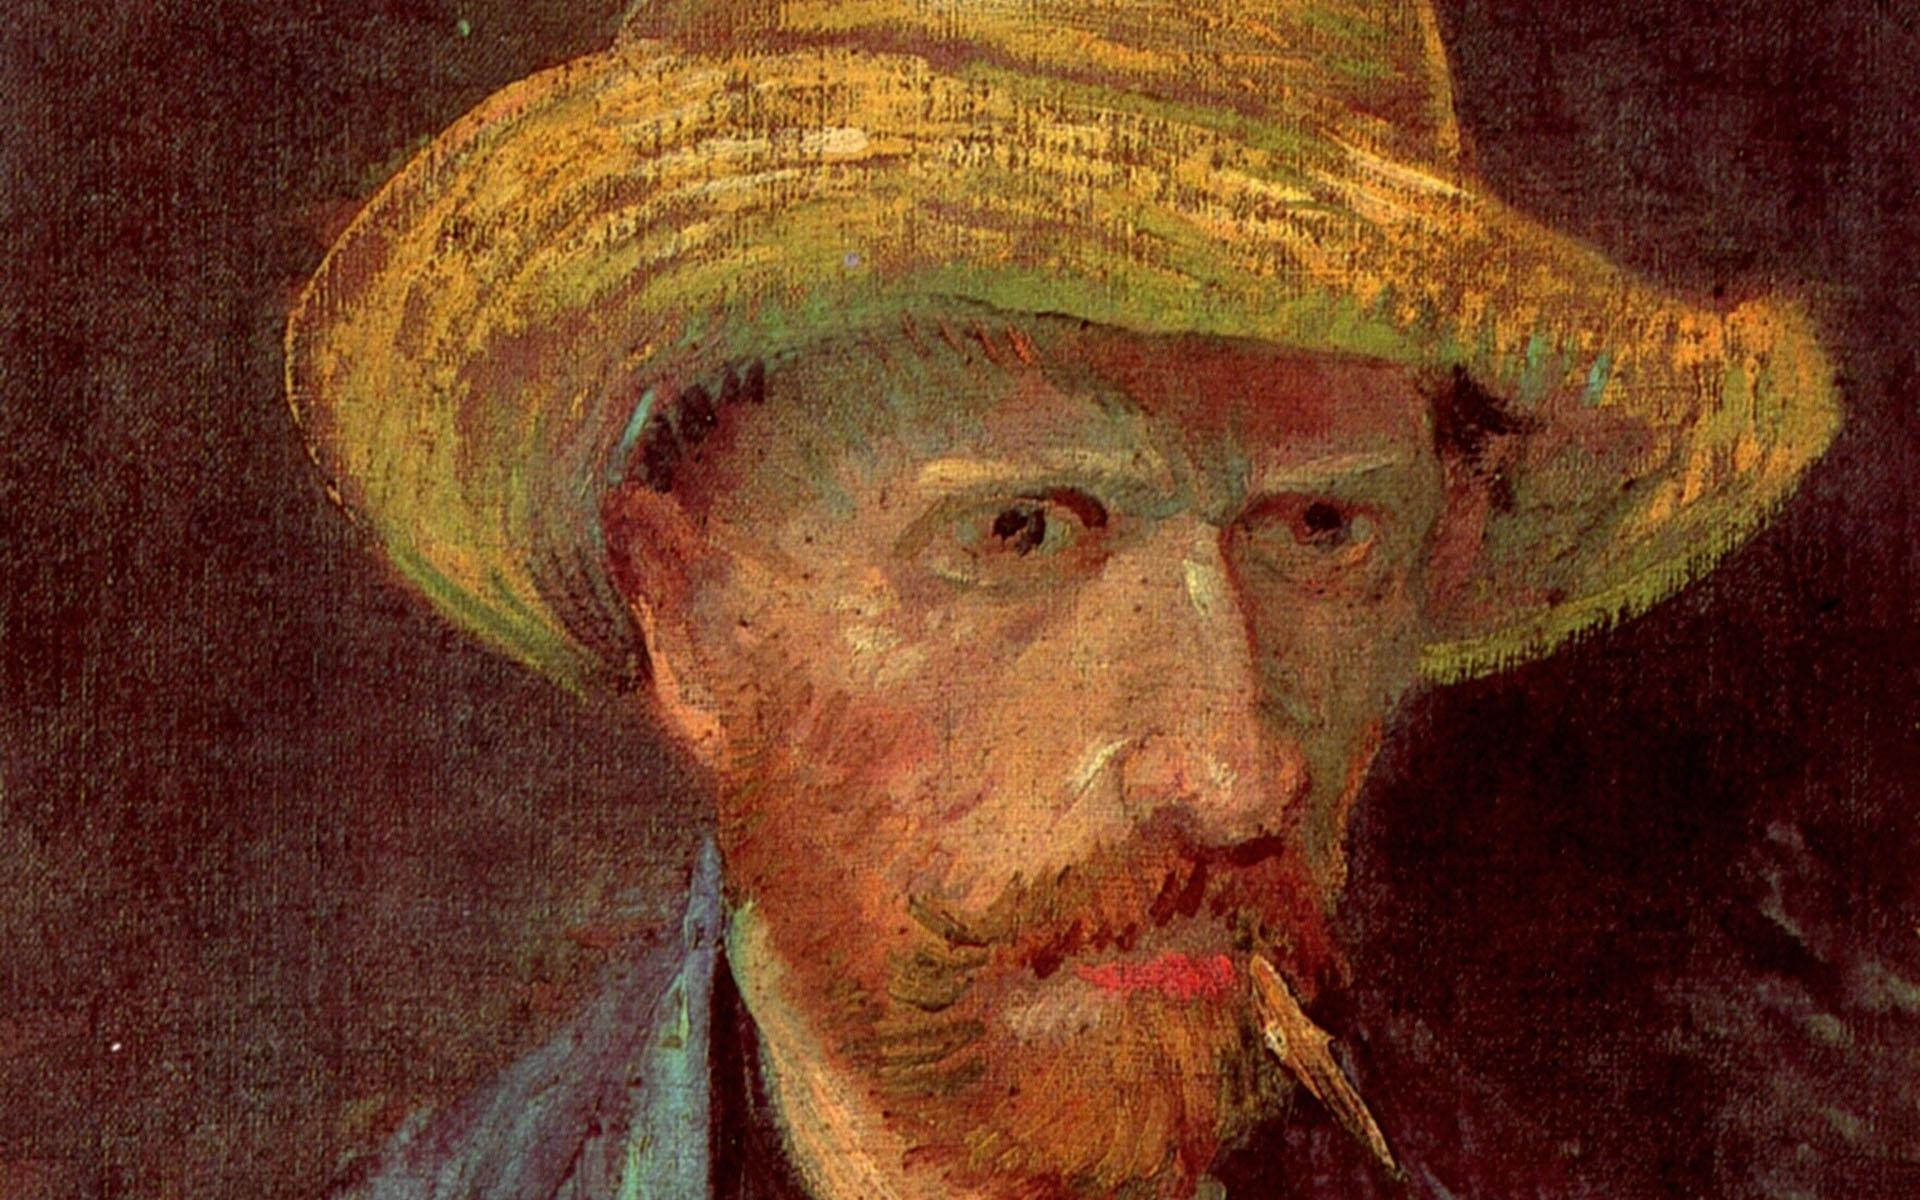 vincent van gogh essays Post impressionism: van gough (self portrait) van gogh biography the work chosen is the highly symbolic work of vincent van gough and his self portrait which he.